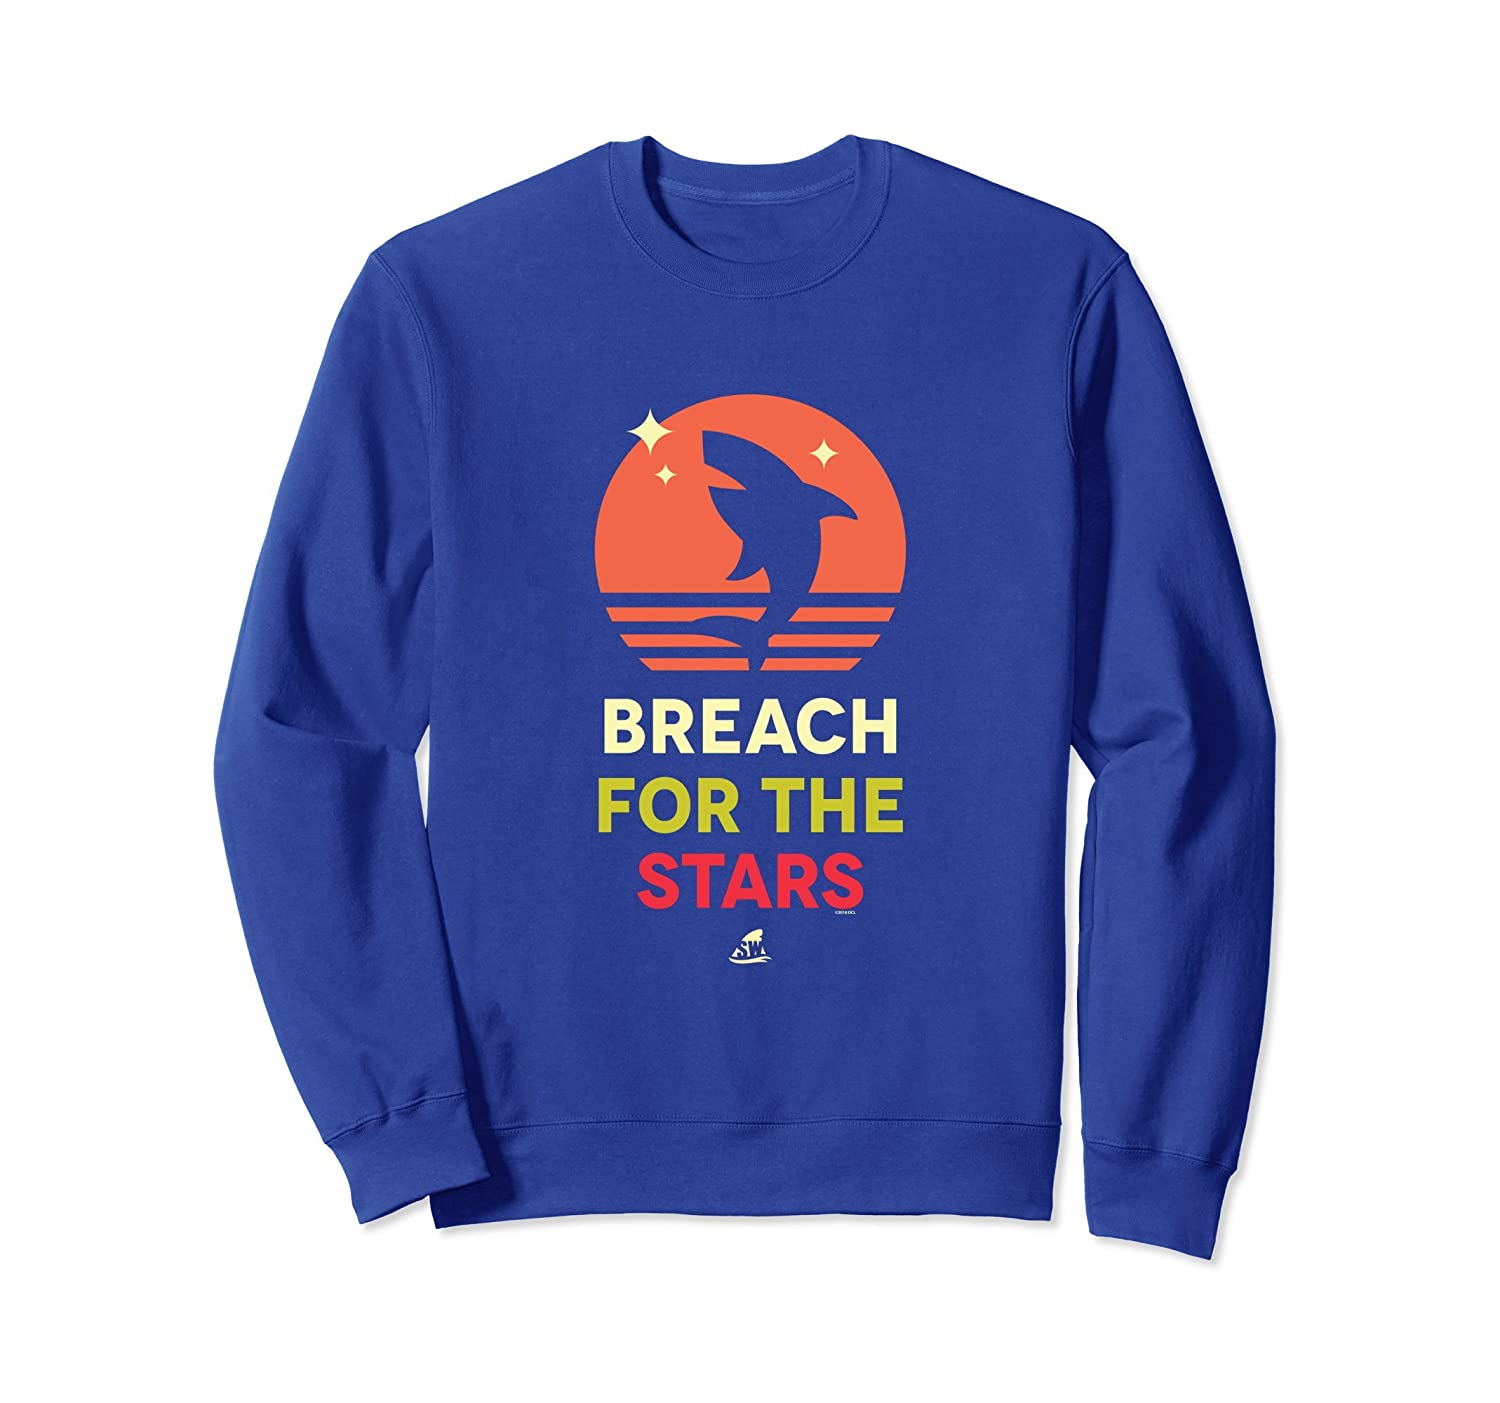 Shark Week: Breach For The Stars Sweatshirt-mt